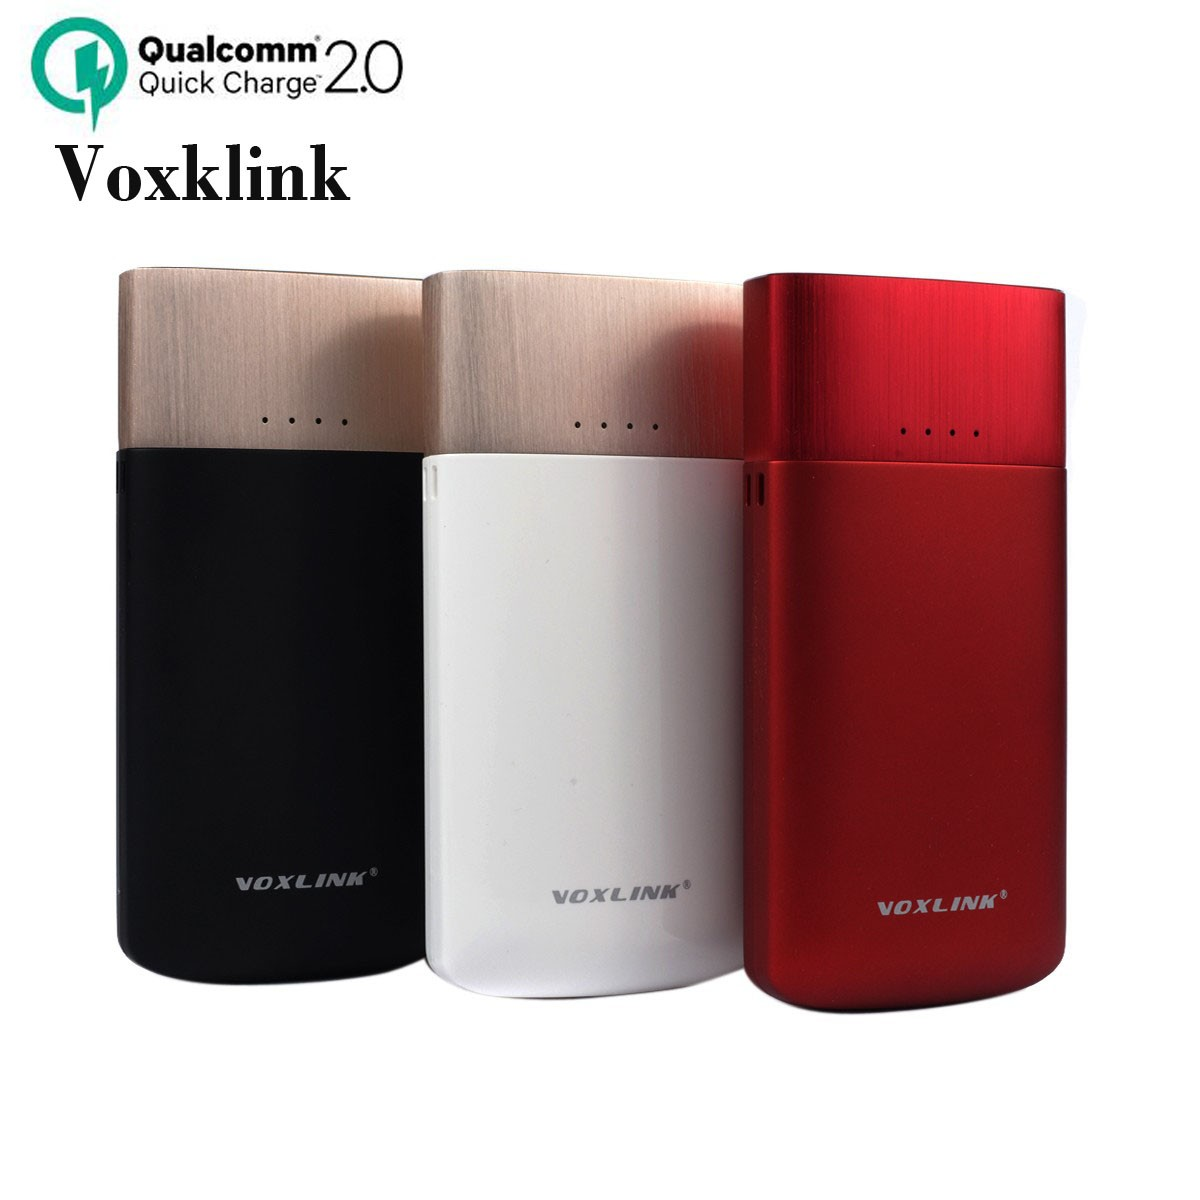 Voxklink Qualcomm Quick Charge 2.0 Portable Dual USB Power Bank 9000mAh 5V 2.4A Charging Powerbank For iPhone Samsung